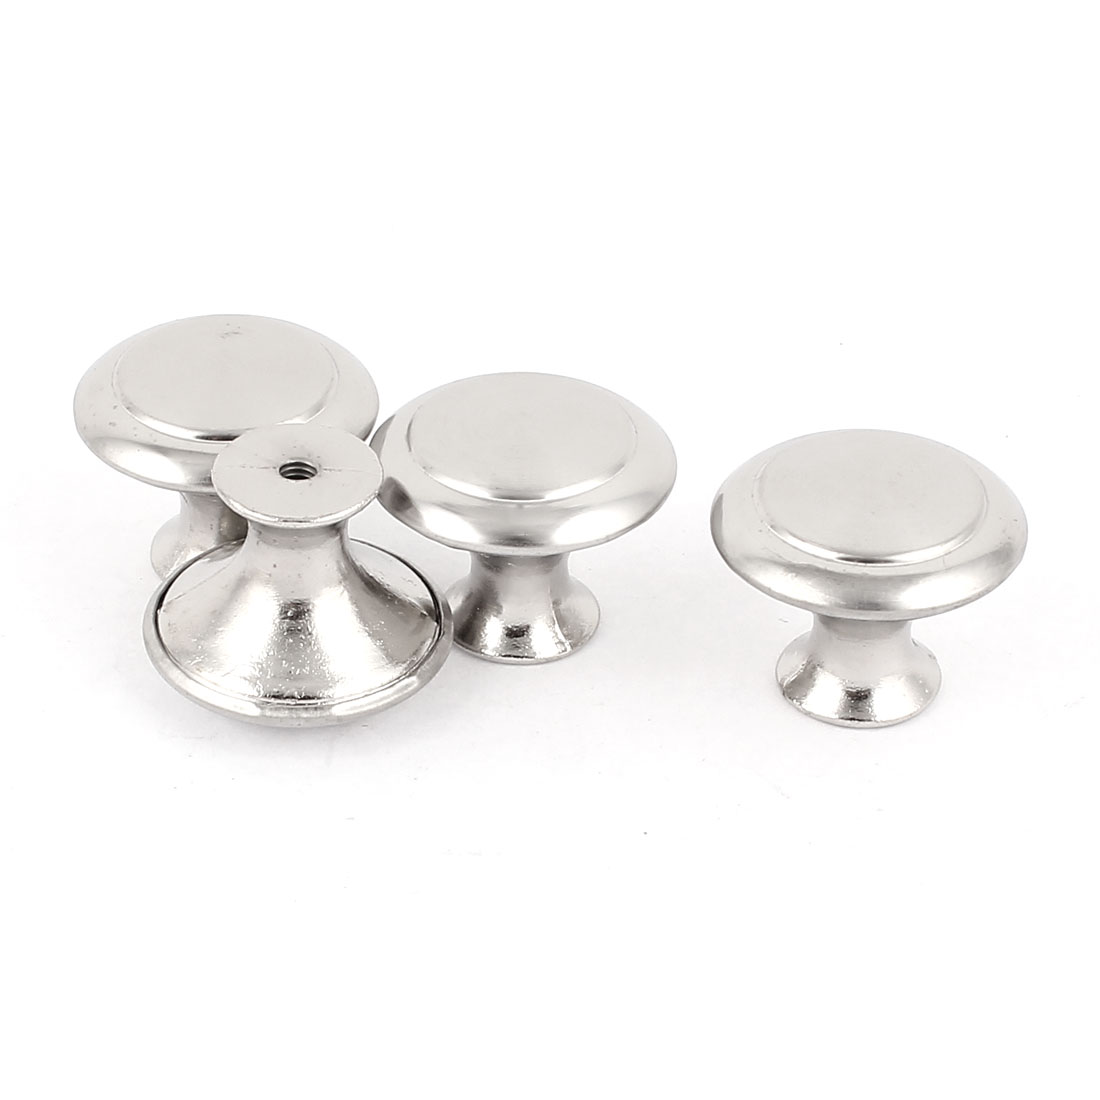 Cabinet Cupboard Drawer Round 27mm Dia Metal Pull Handle Knob Grip Hardware 4pcs